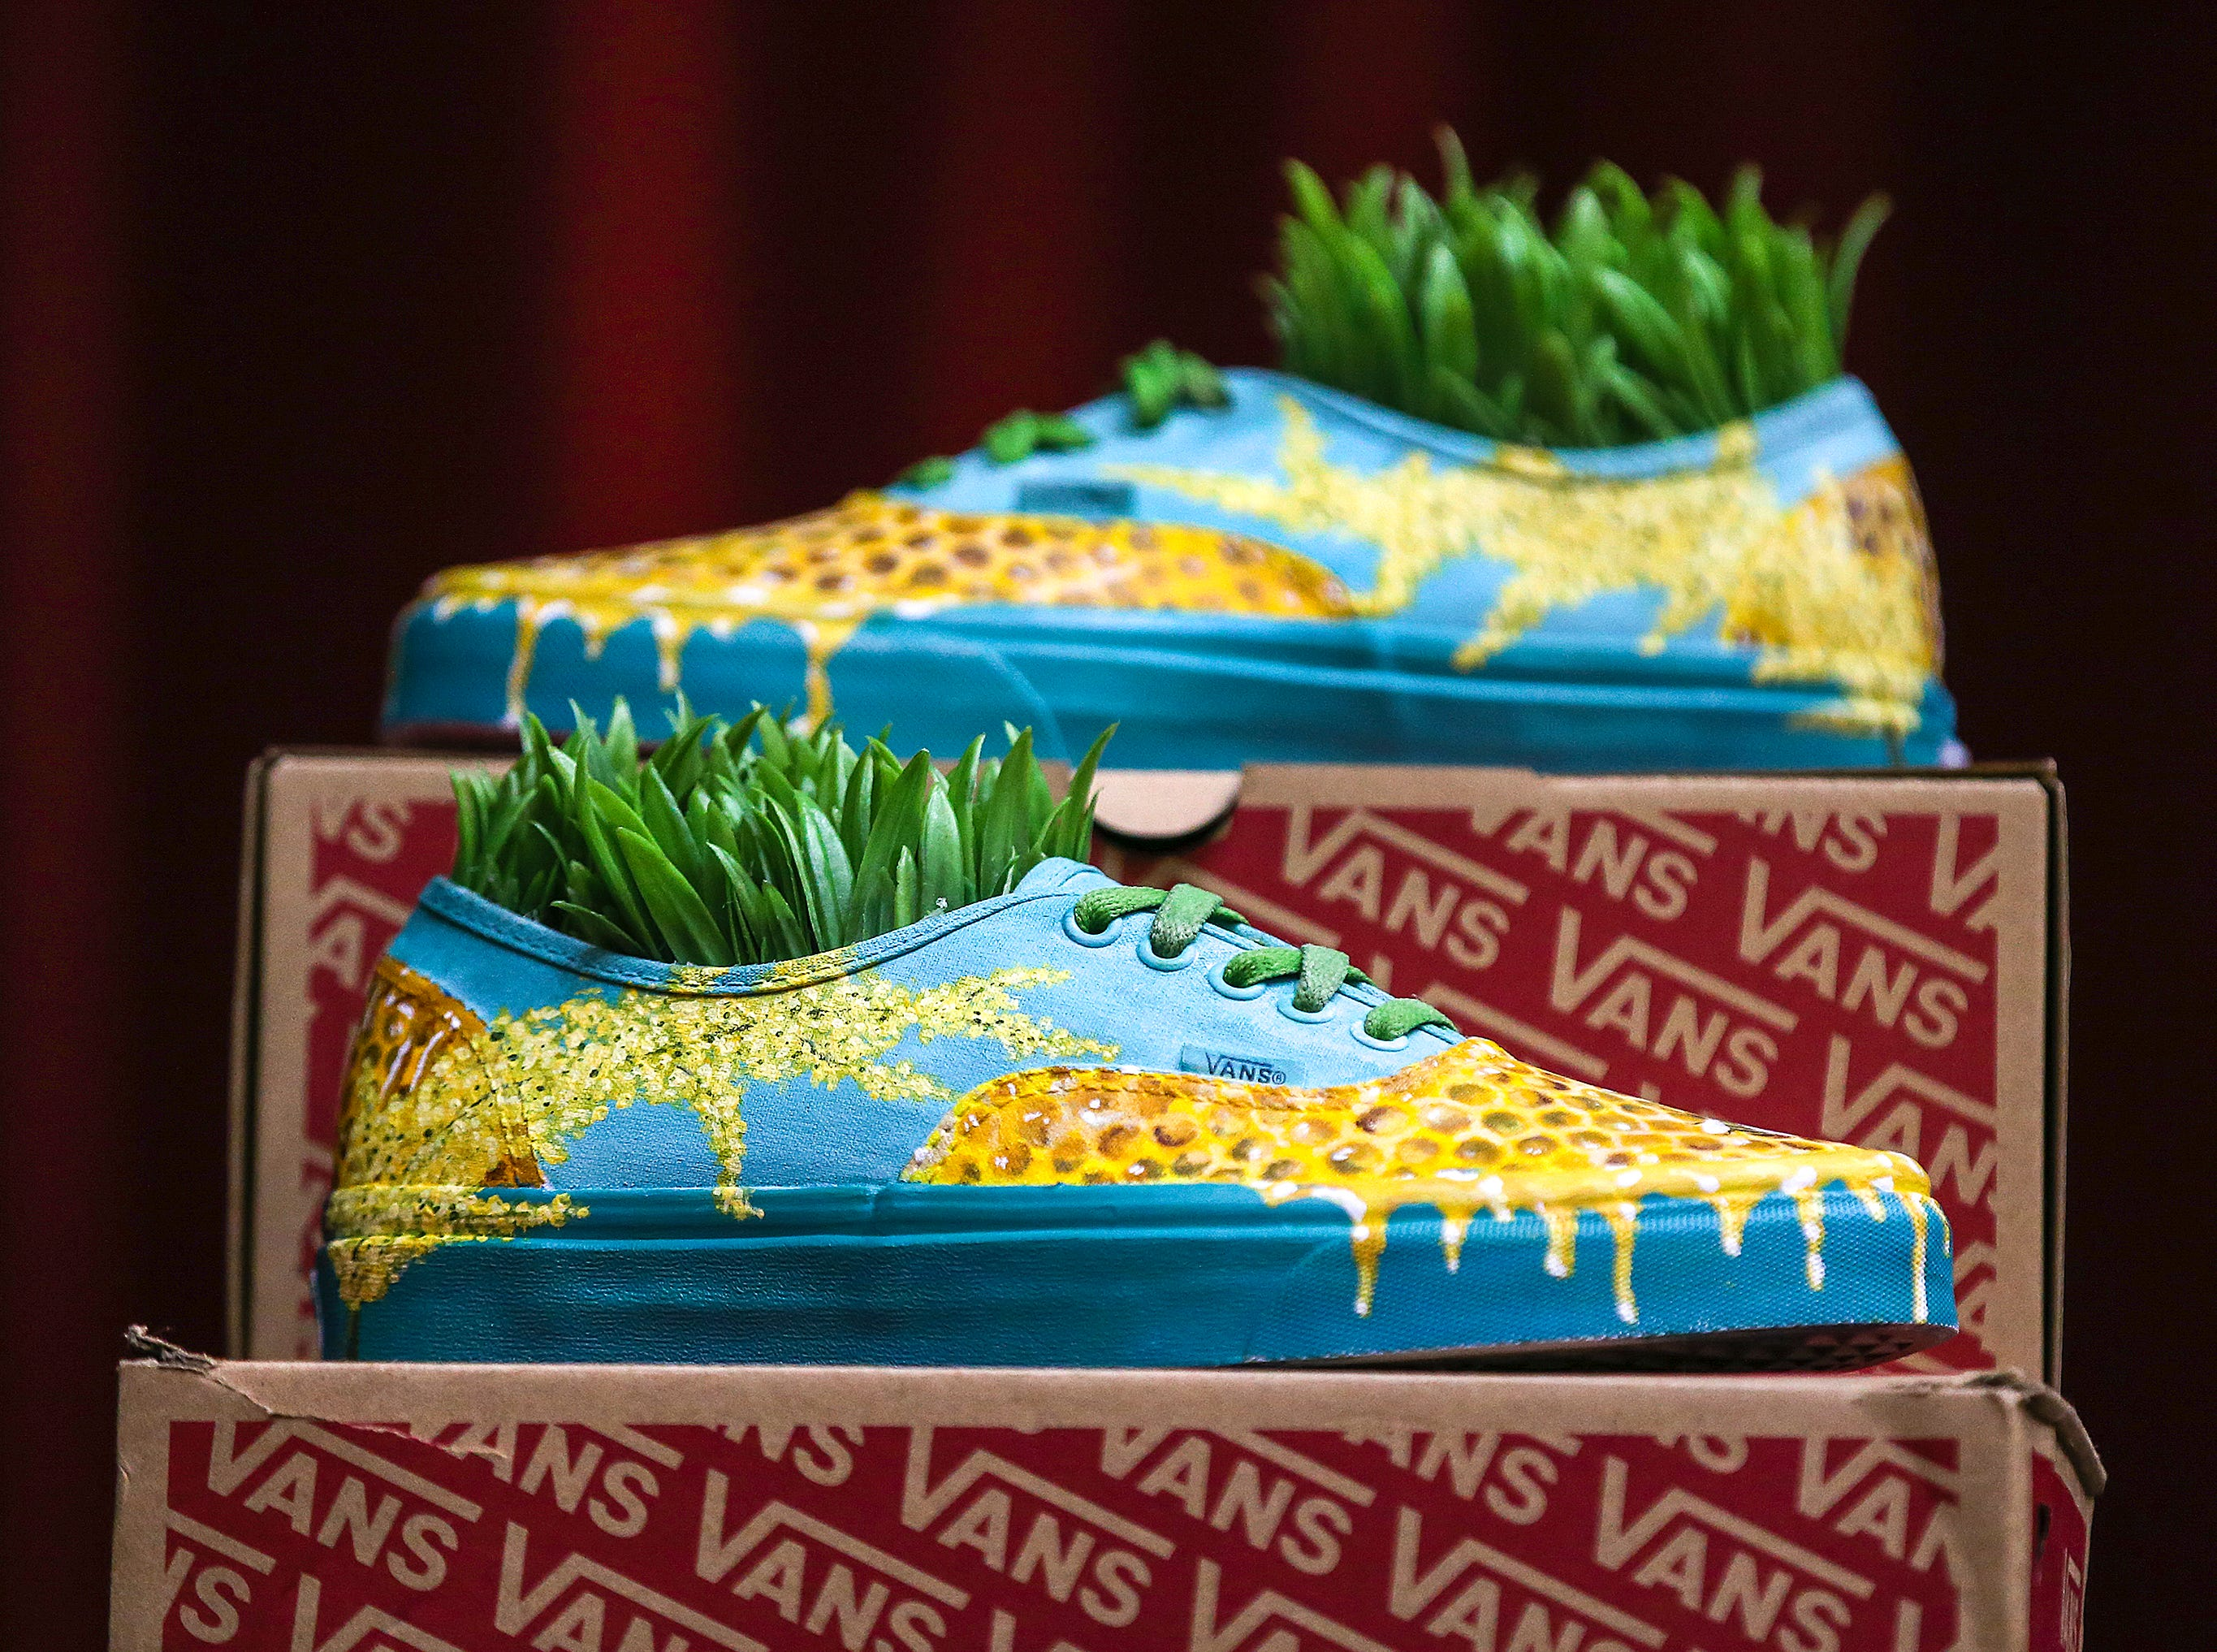 One of the pieces of art created by Atherton High School students for the Vans Custom Culture contest.  The contest had students use the distinctive footwear to design shoes that depict their state.  Atherton was one of the runner ups and received $10,000 from Vans.May 14, 2019